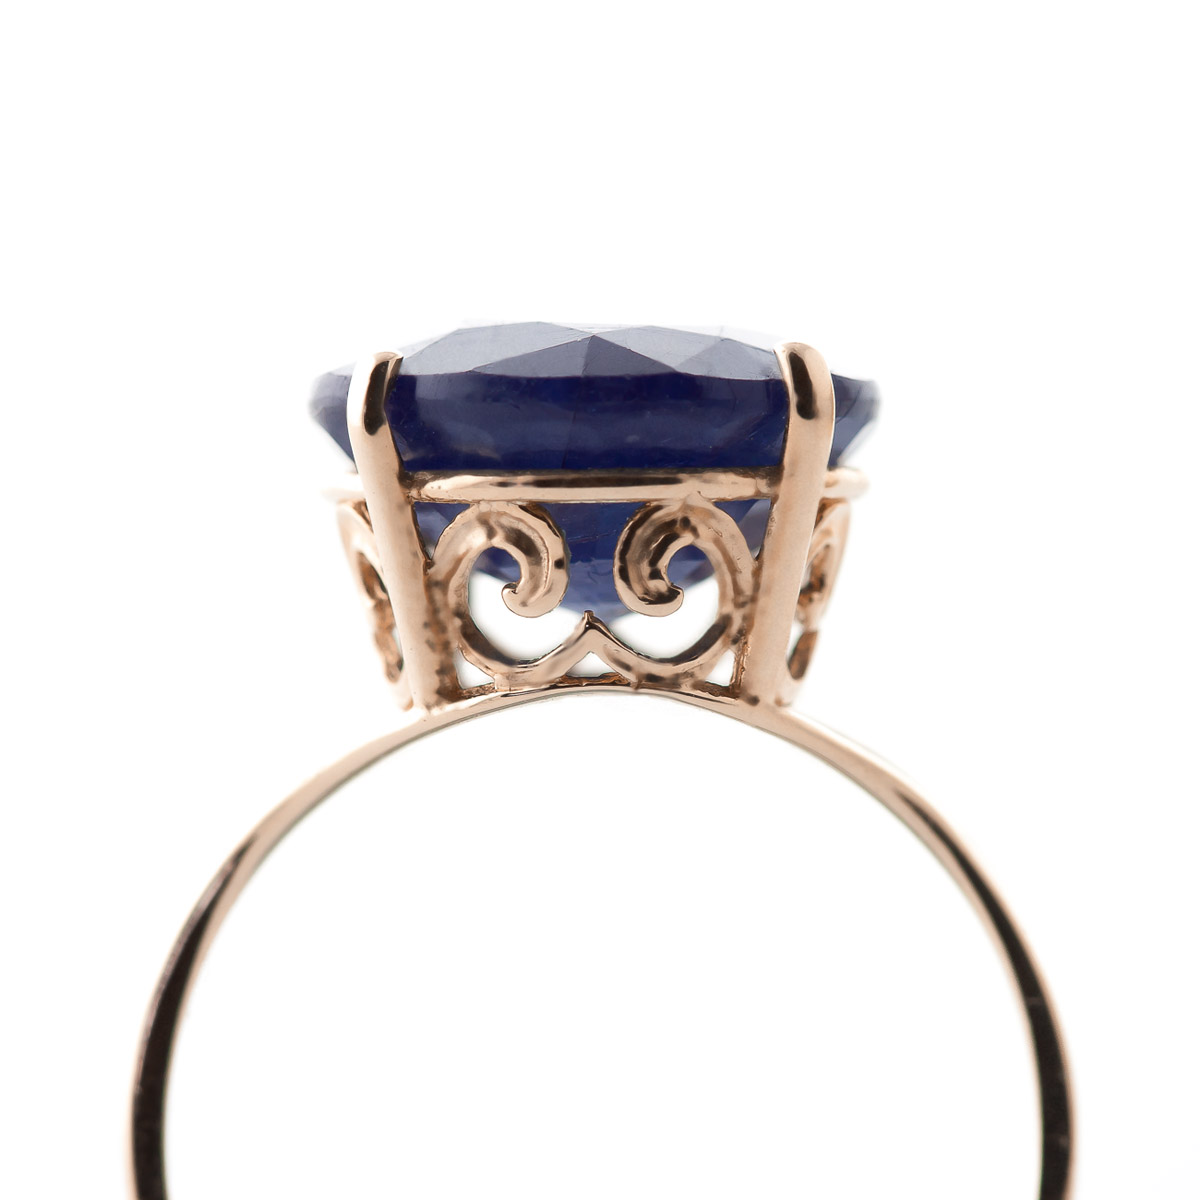 Round Brilliant Cut Sapphire Ring 9.5ct in 9ct Rose Gold